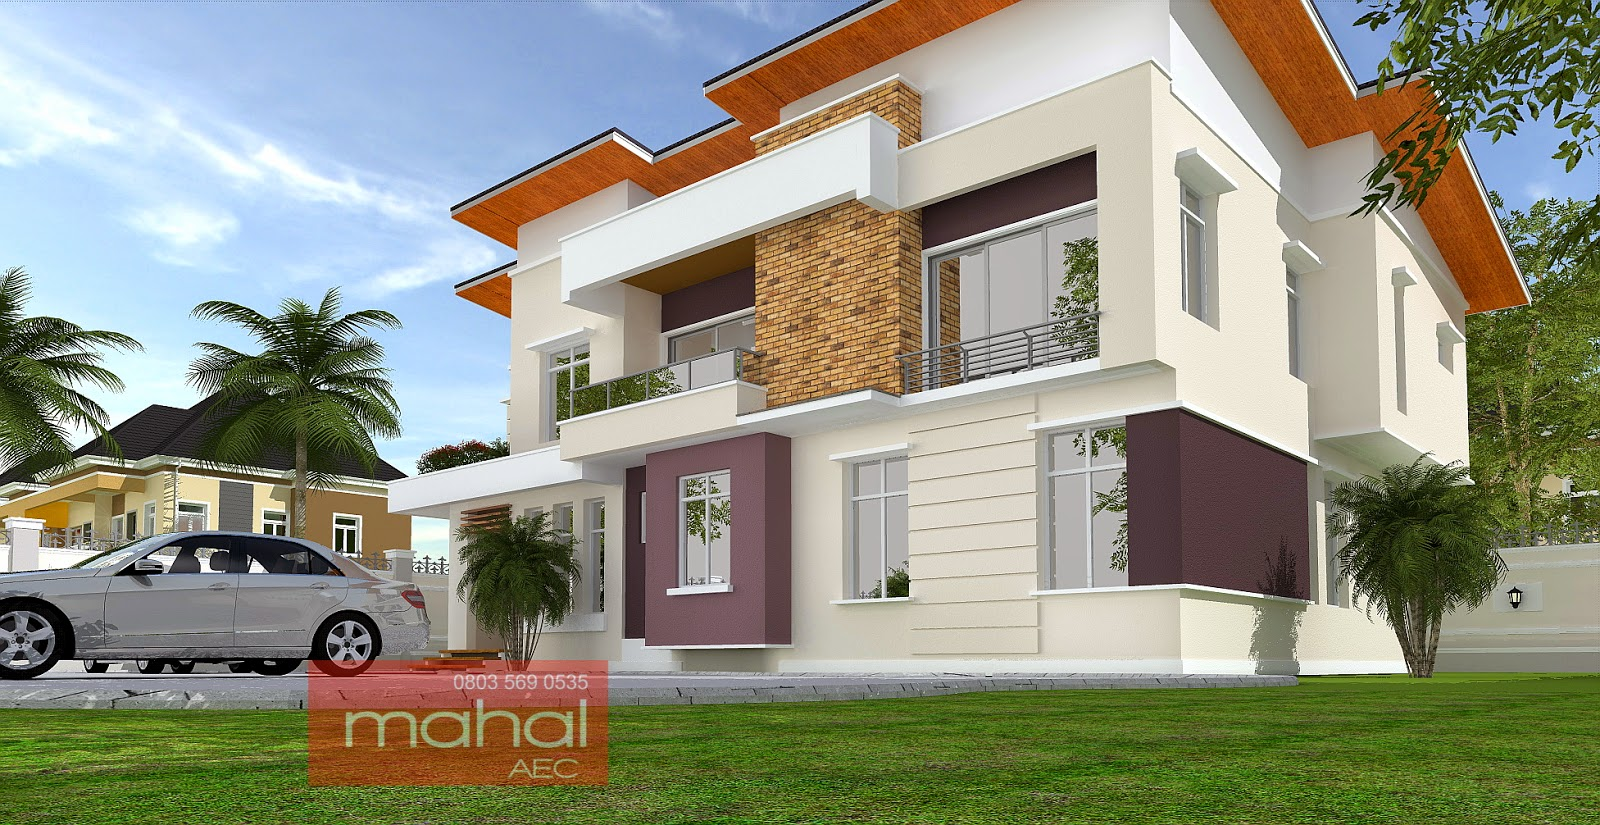 Bungalow house plans designs nigeria for House plans nigeria